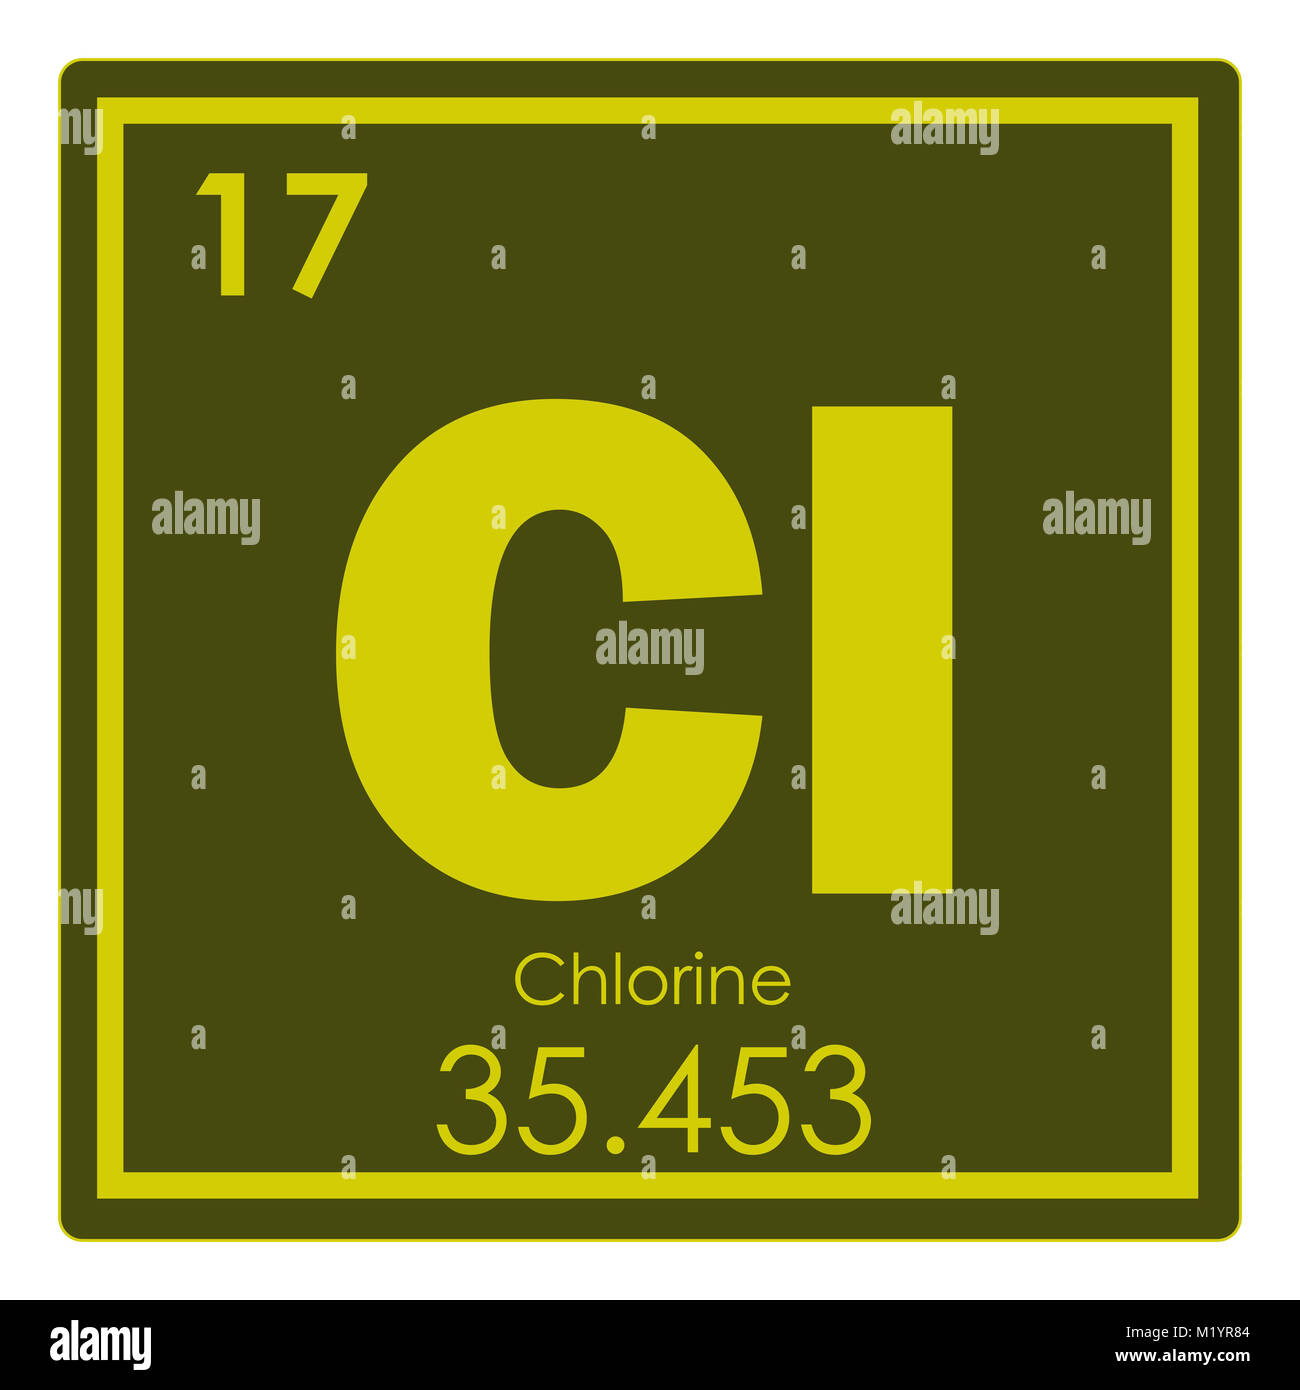 Chlorine Chemical Element Periodic Table Science Symbol Stock Photo